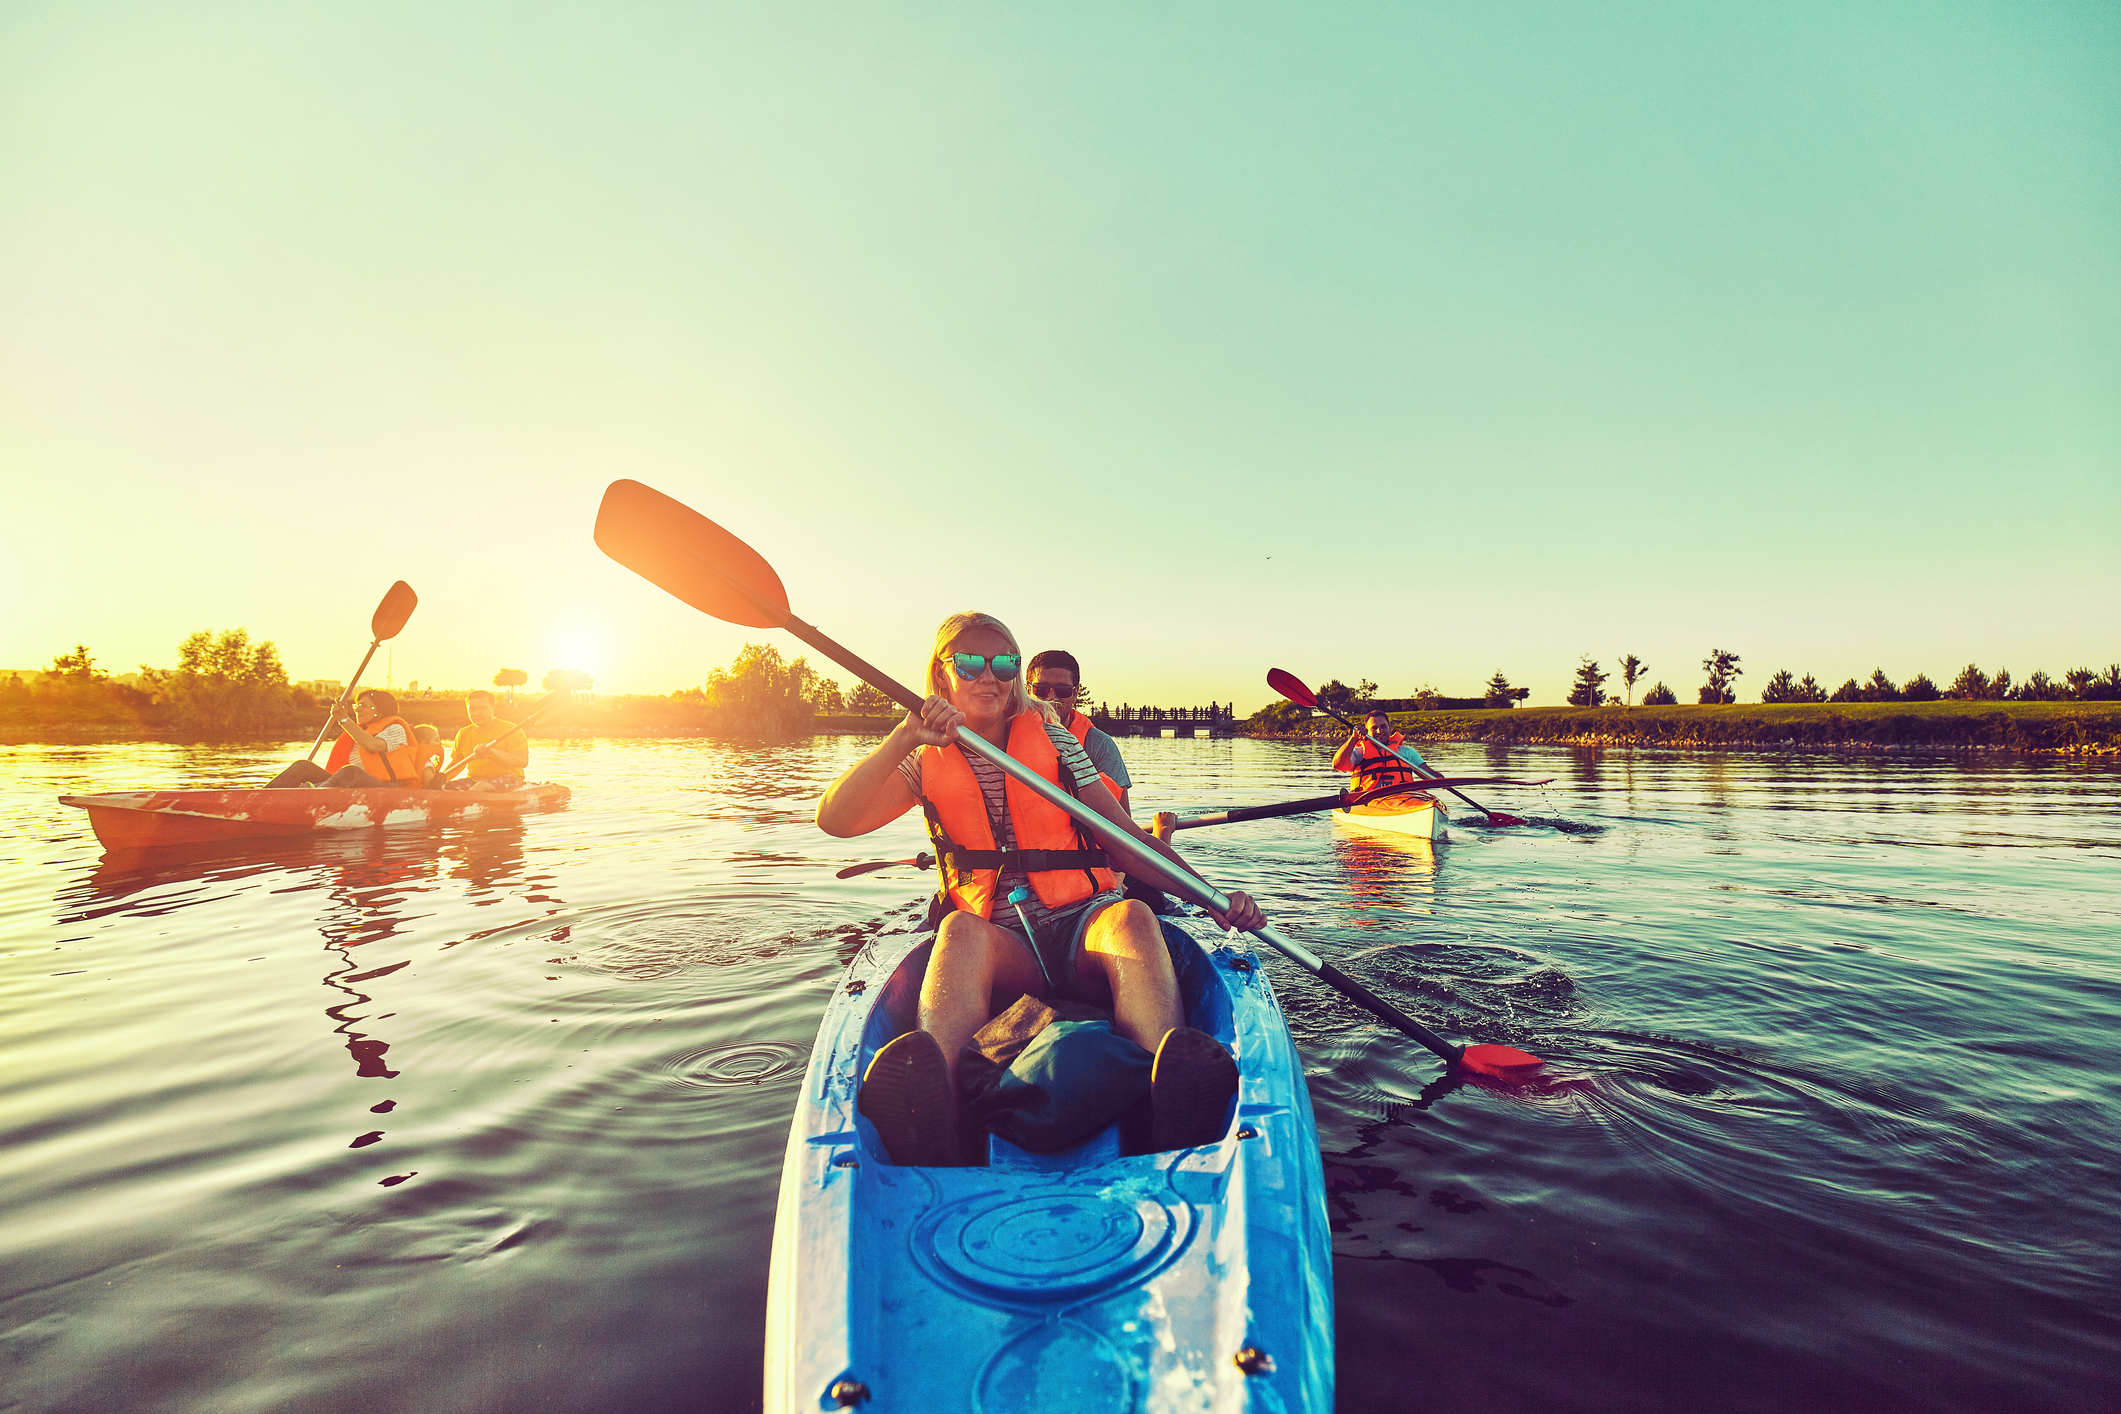 Kayaking and canoeing with family. Children on canoe. Family on kayak ride. This can be you if you join the kayak club.